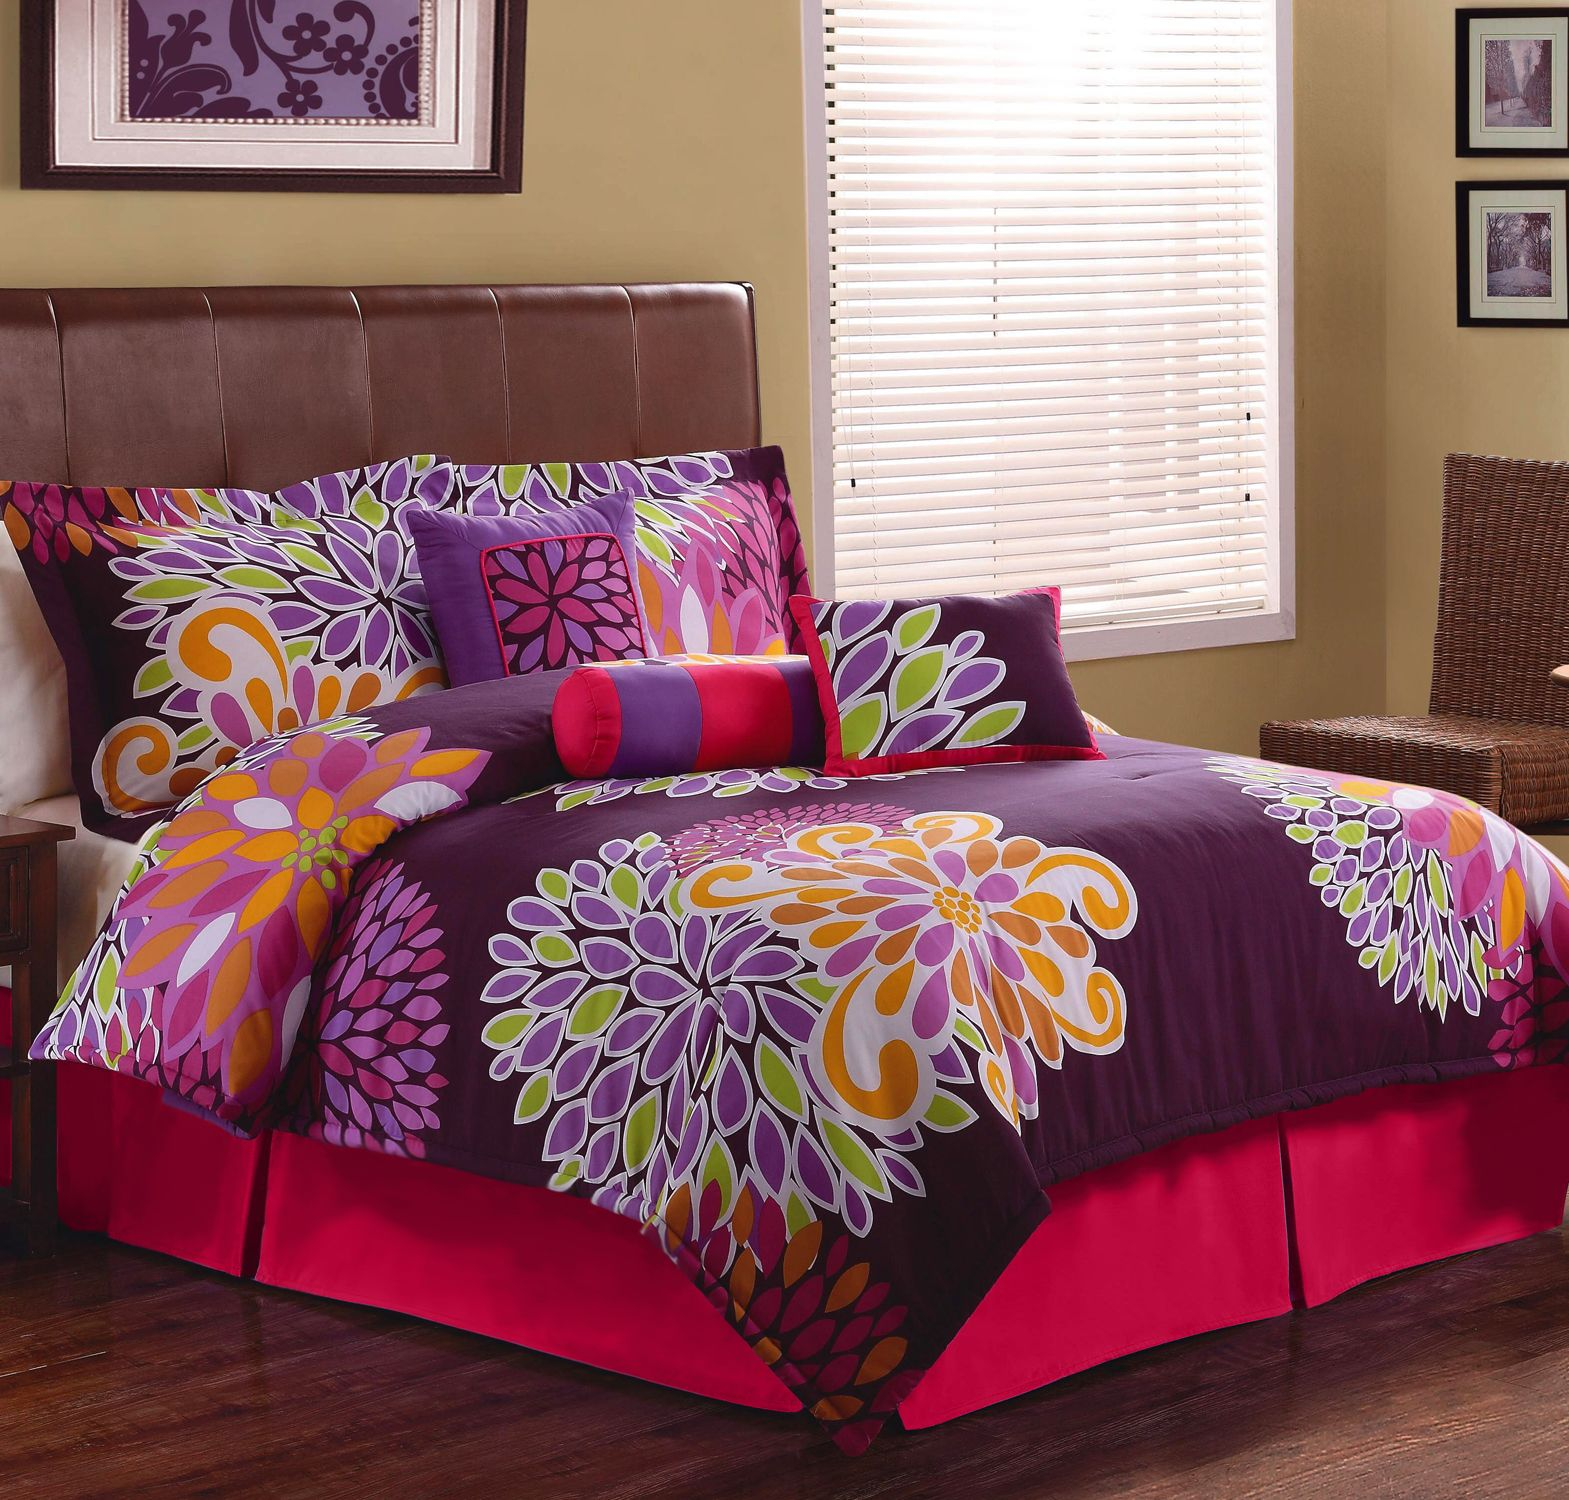 Marvelous Sketch Of Fun Bed Sheets Ideas